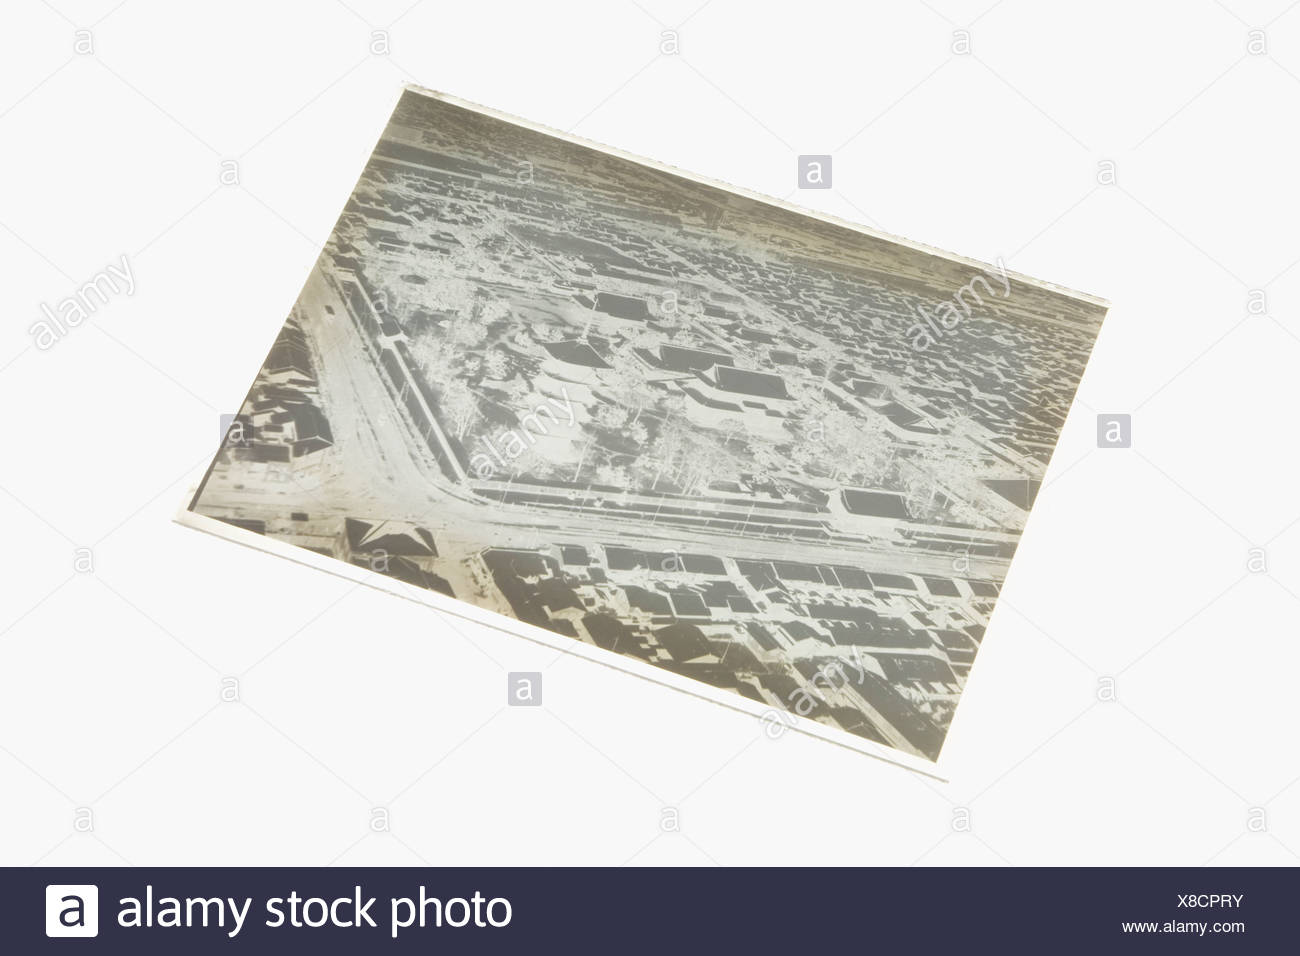 Photographic plate - Stock Image